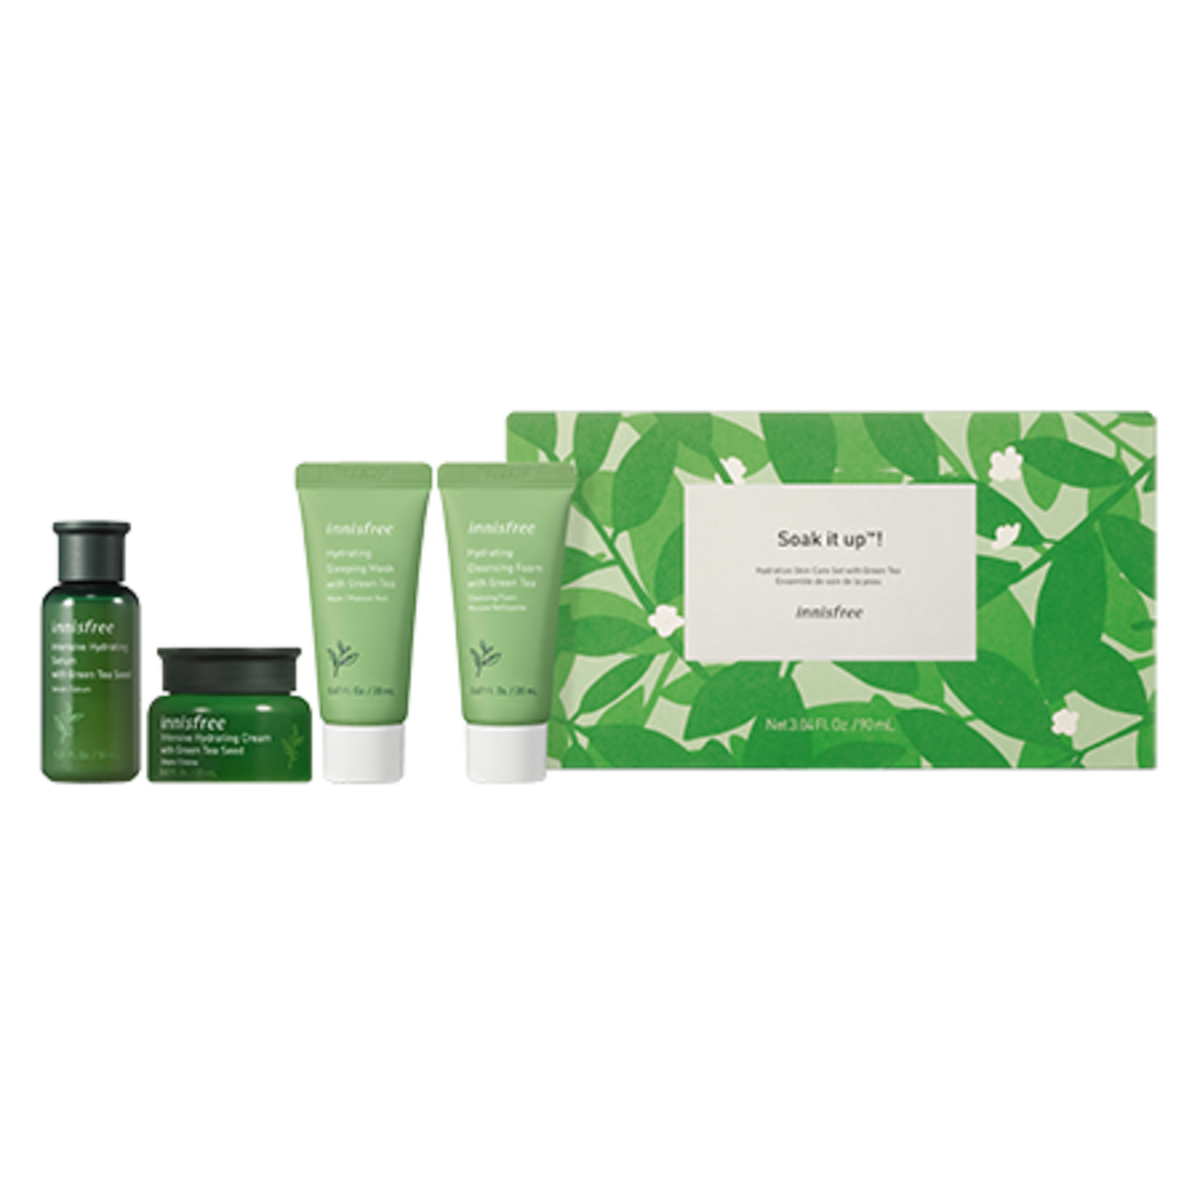 Innisfree is a South Korean cosmetics brand that I quite like, especially their green tea moisturizer.